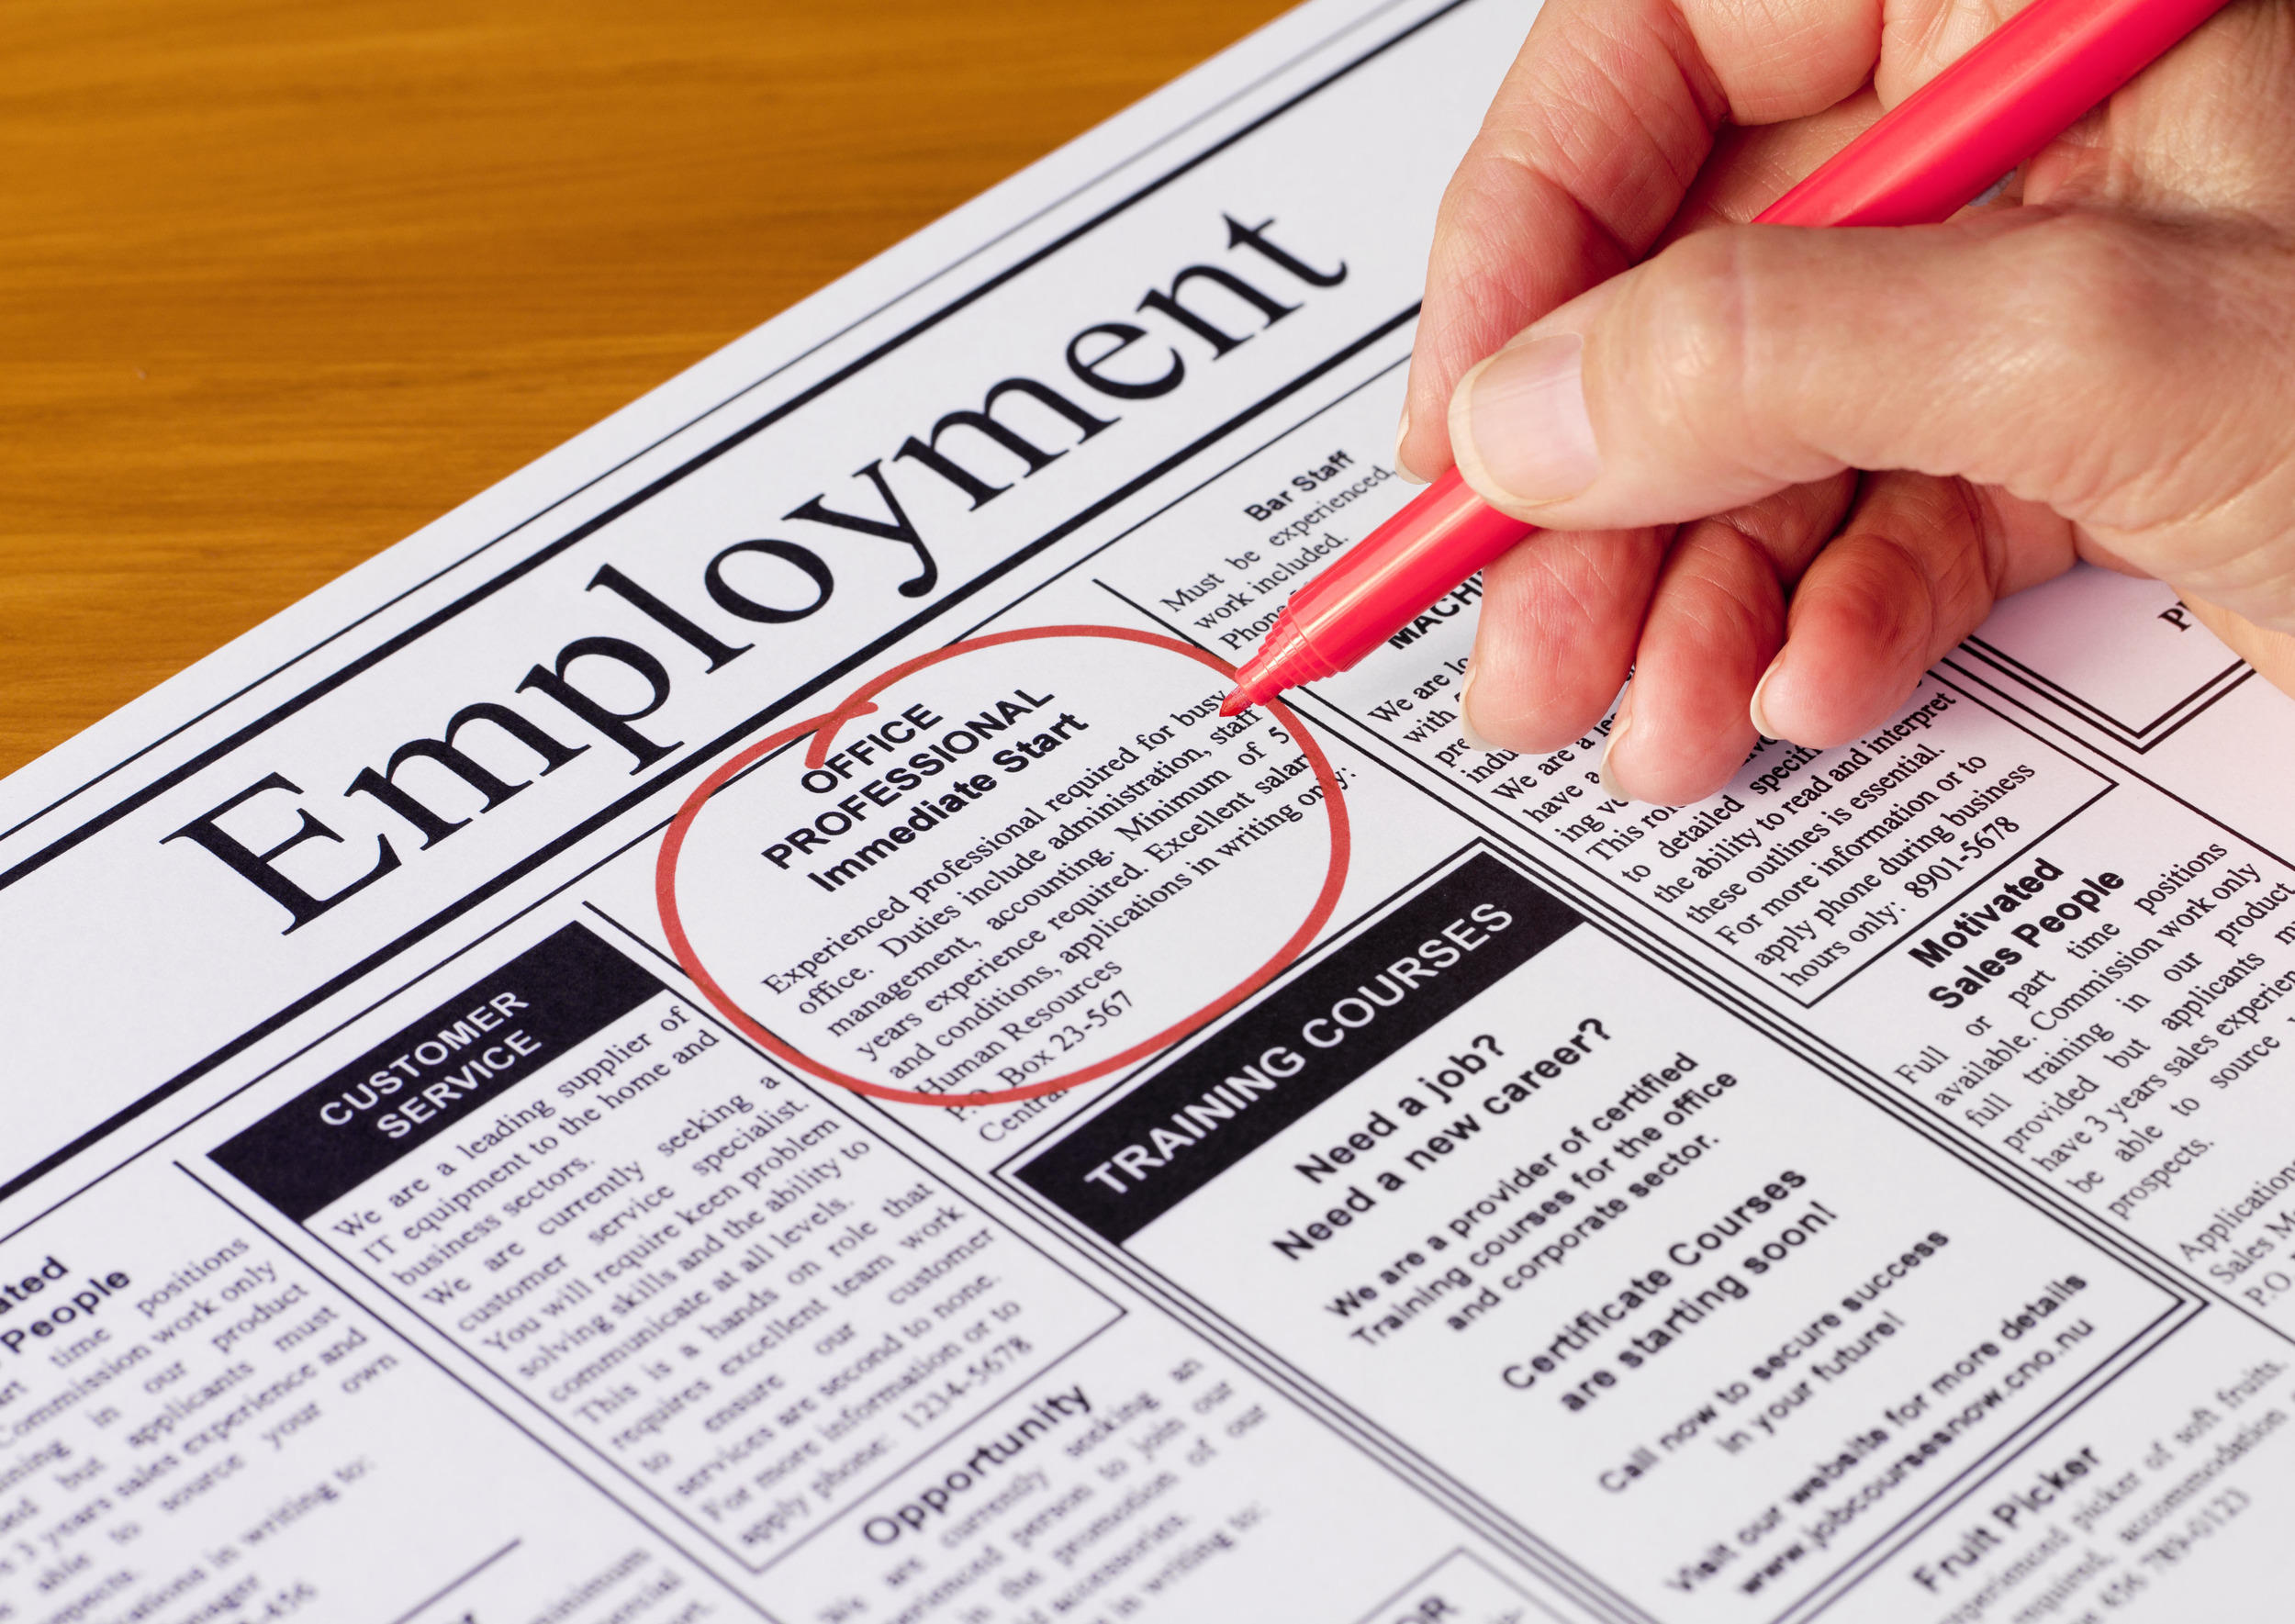 How to write a cover letter for a job application newspaper job advertisement